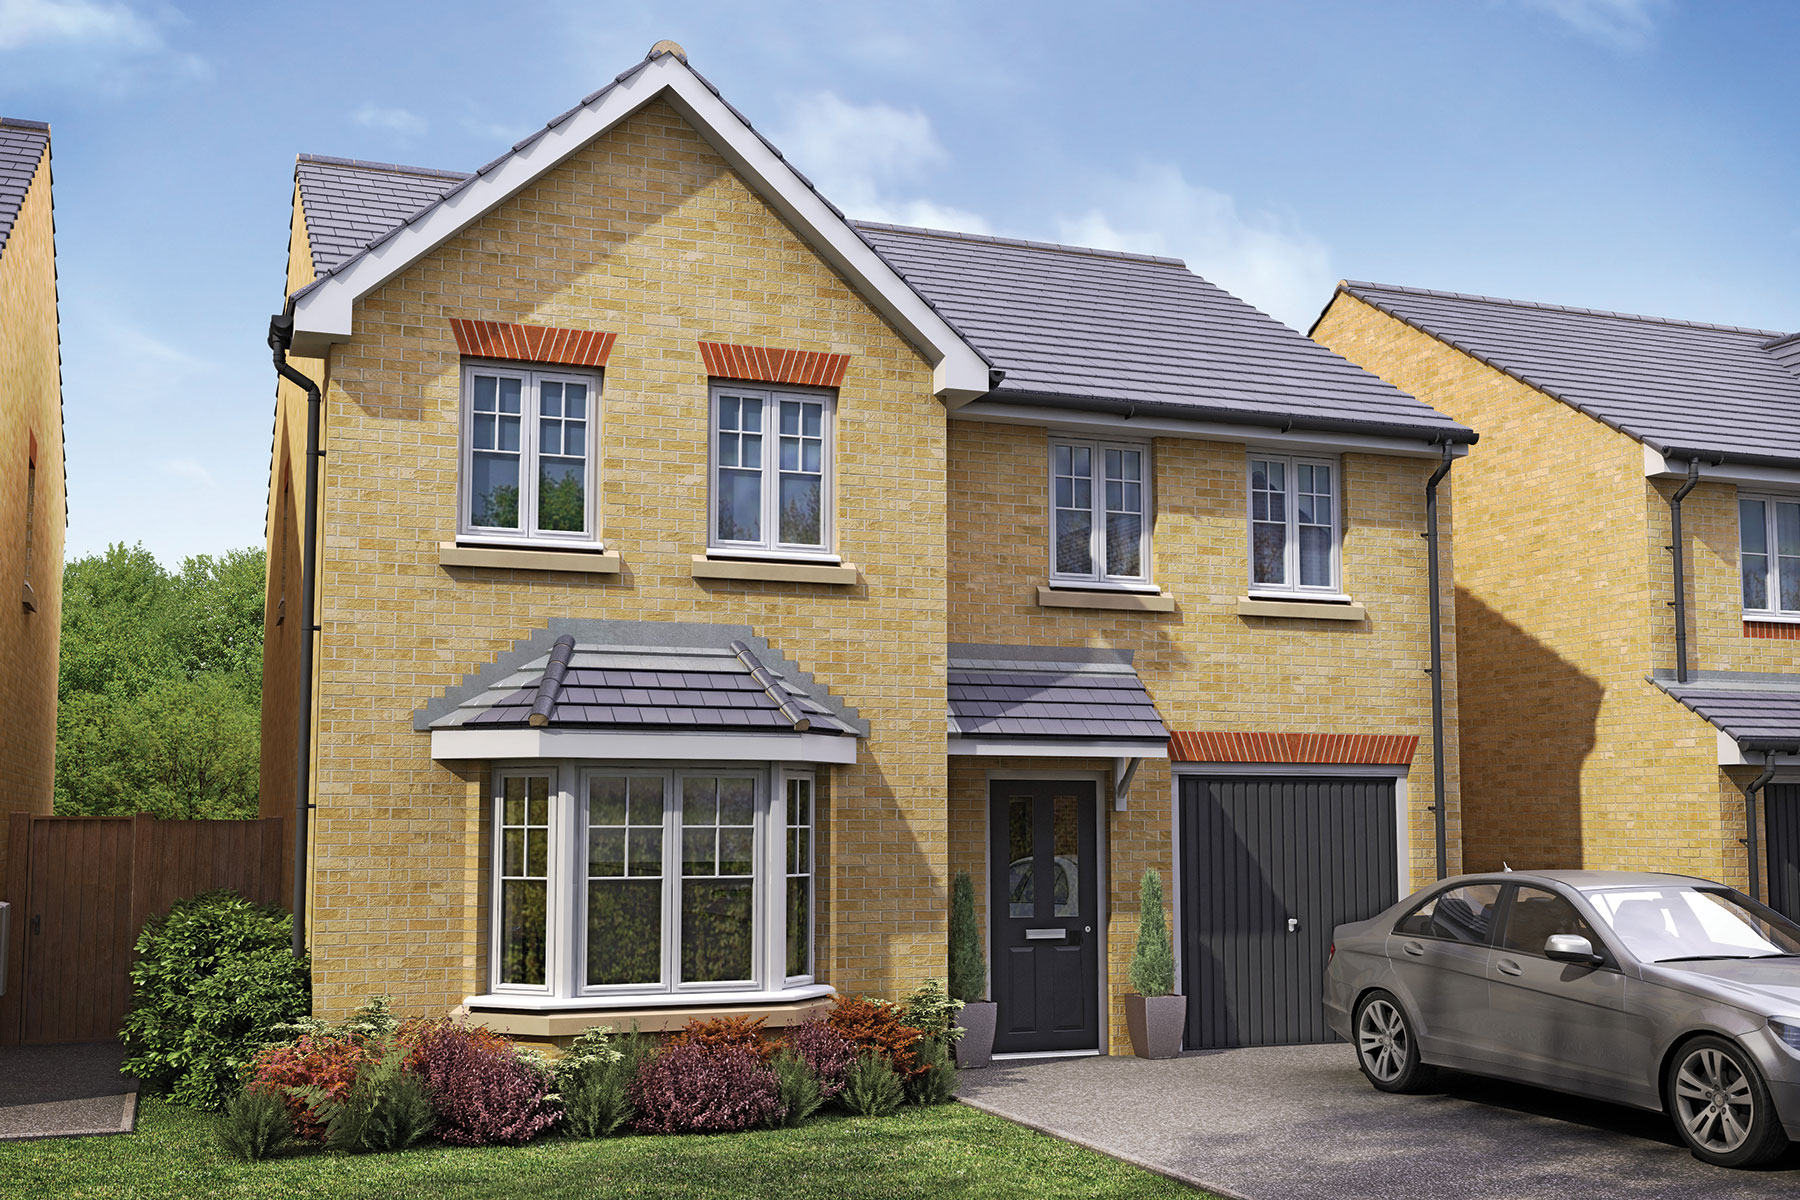 Taylor Wimpey - Exterior - The Haddenham - 4 bedroom new home